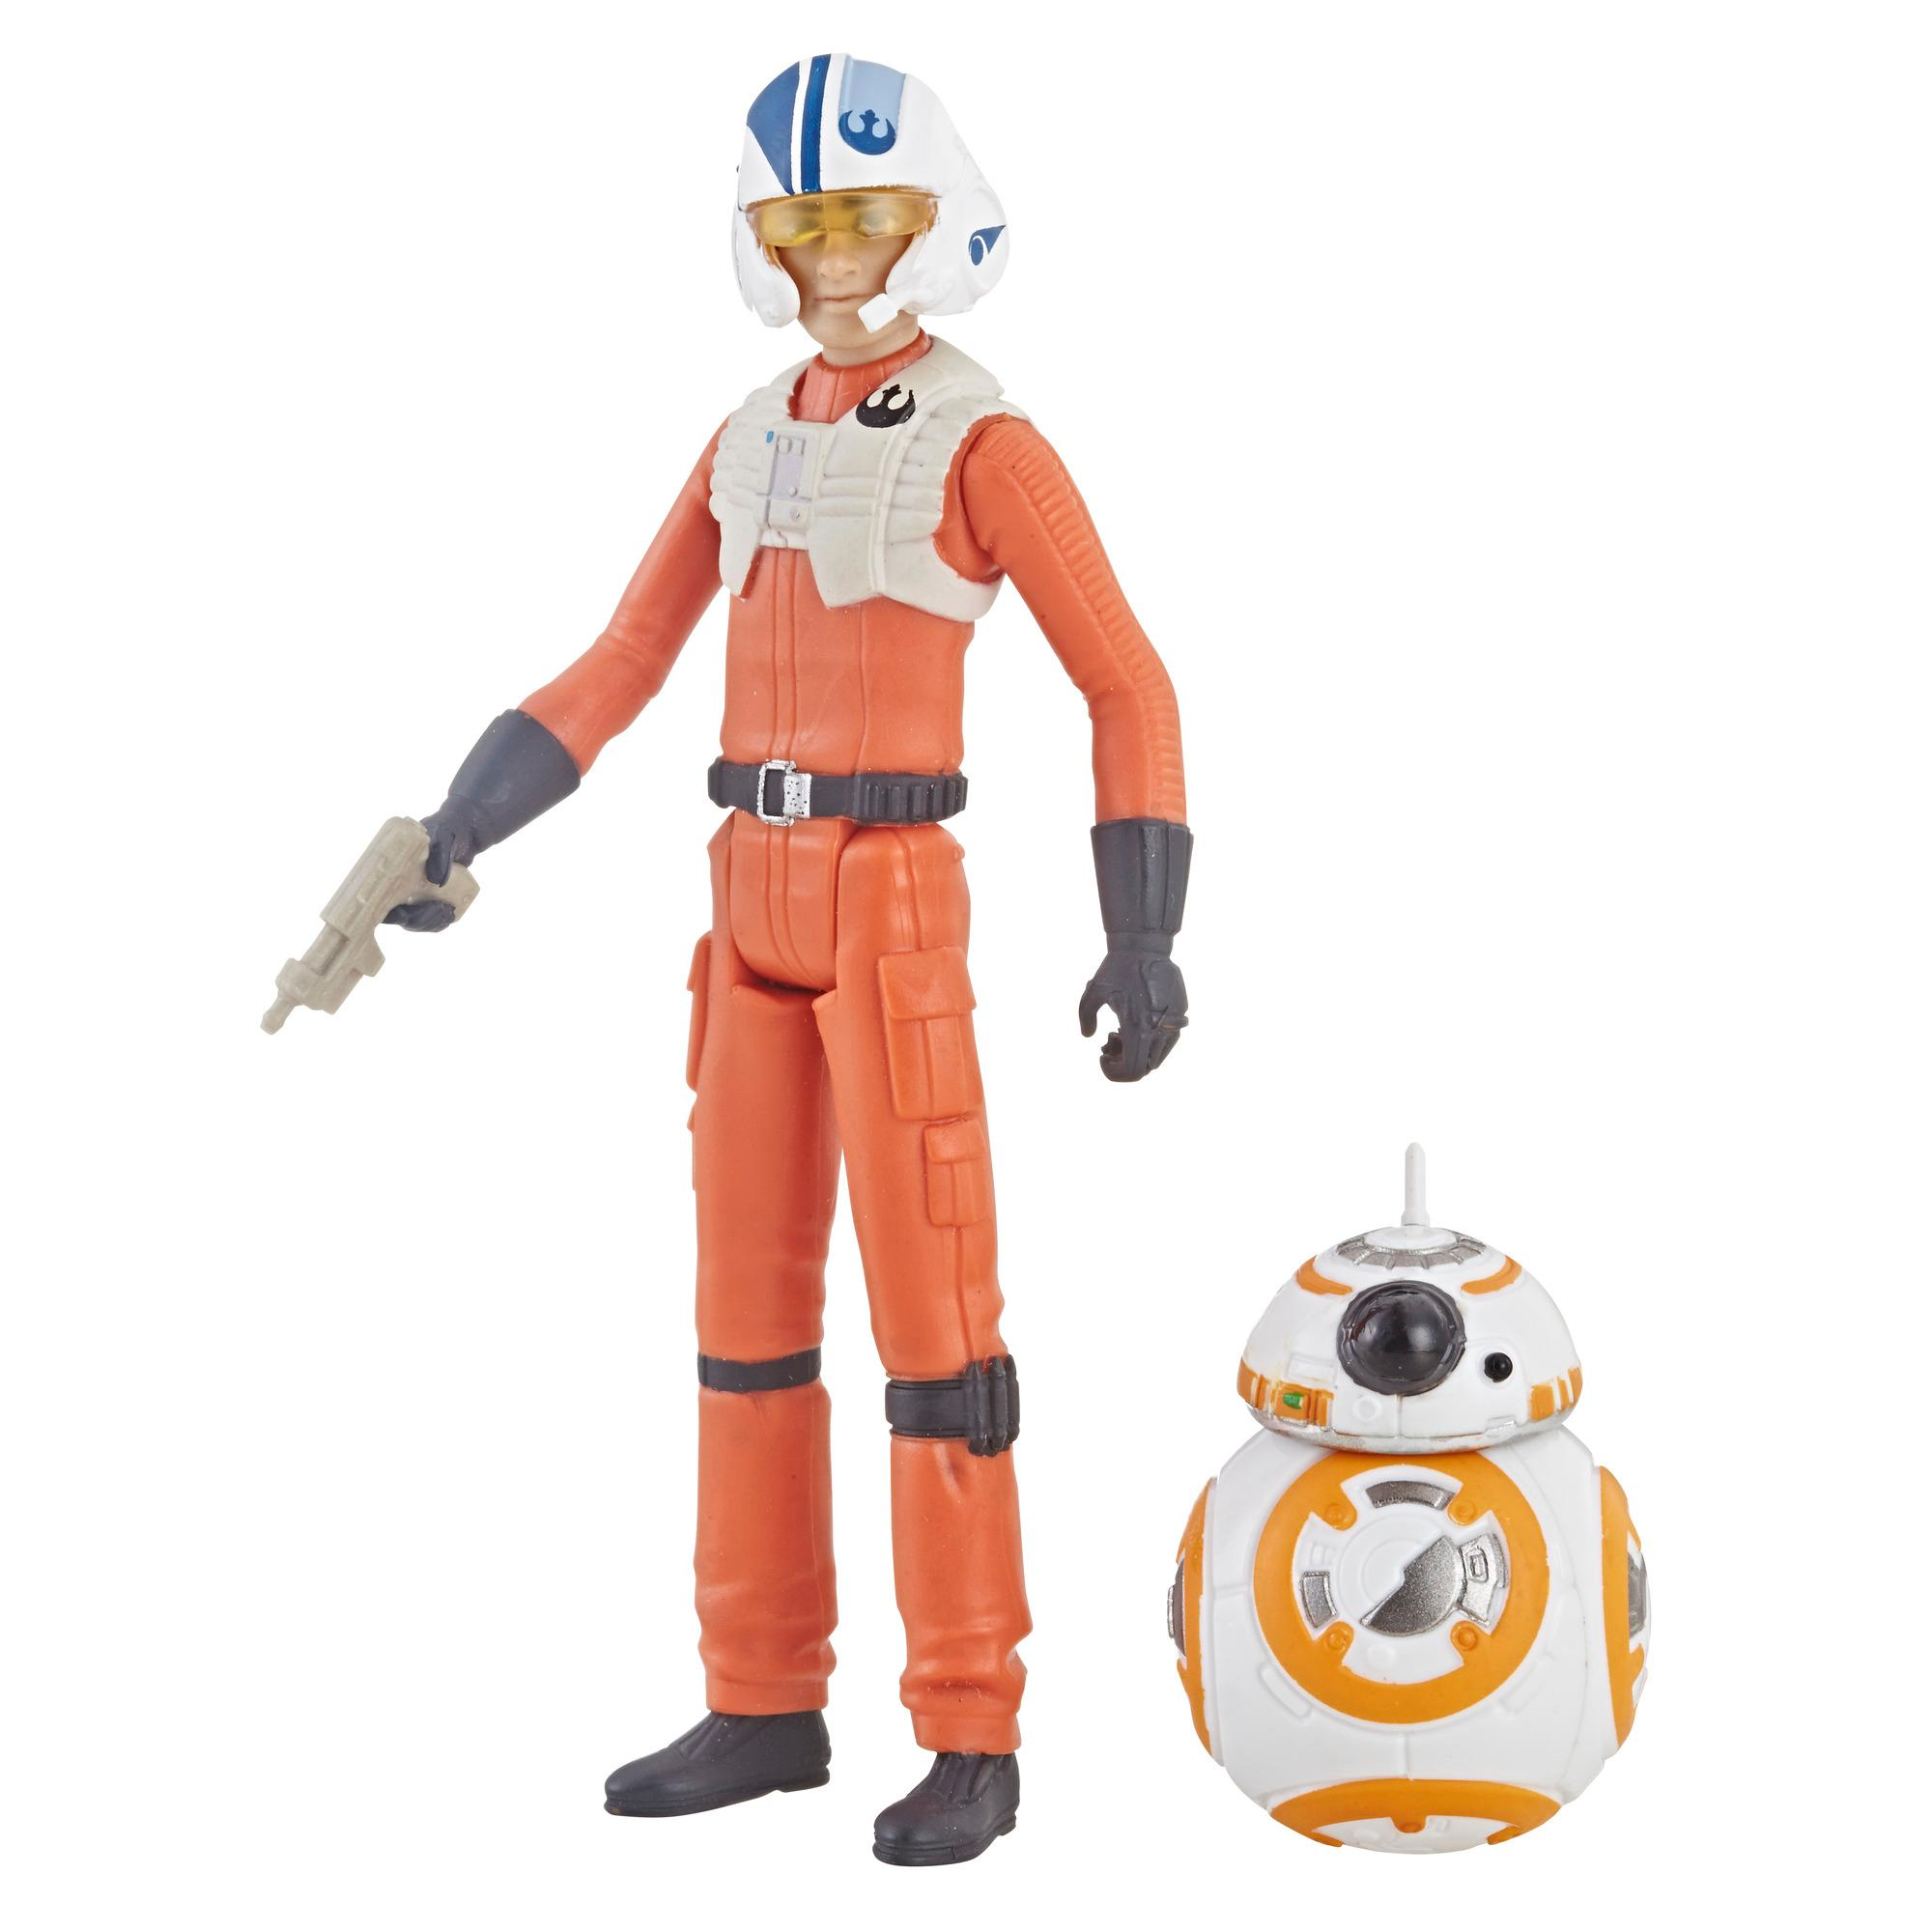 Star Wars Série animée Star Wars: Resistance - Duo de figurines Poe Dameron (9,5 cm) et BB-8